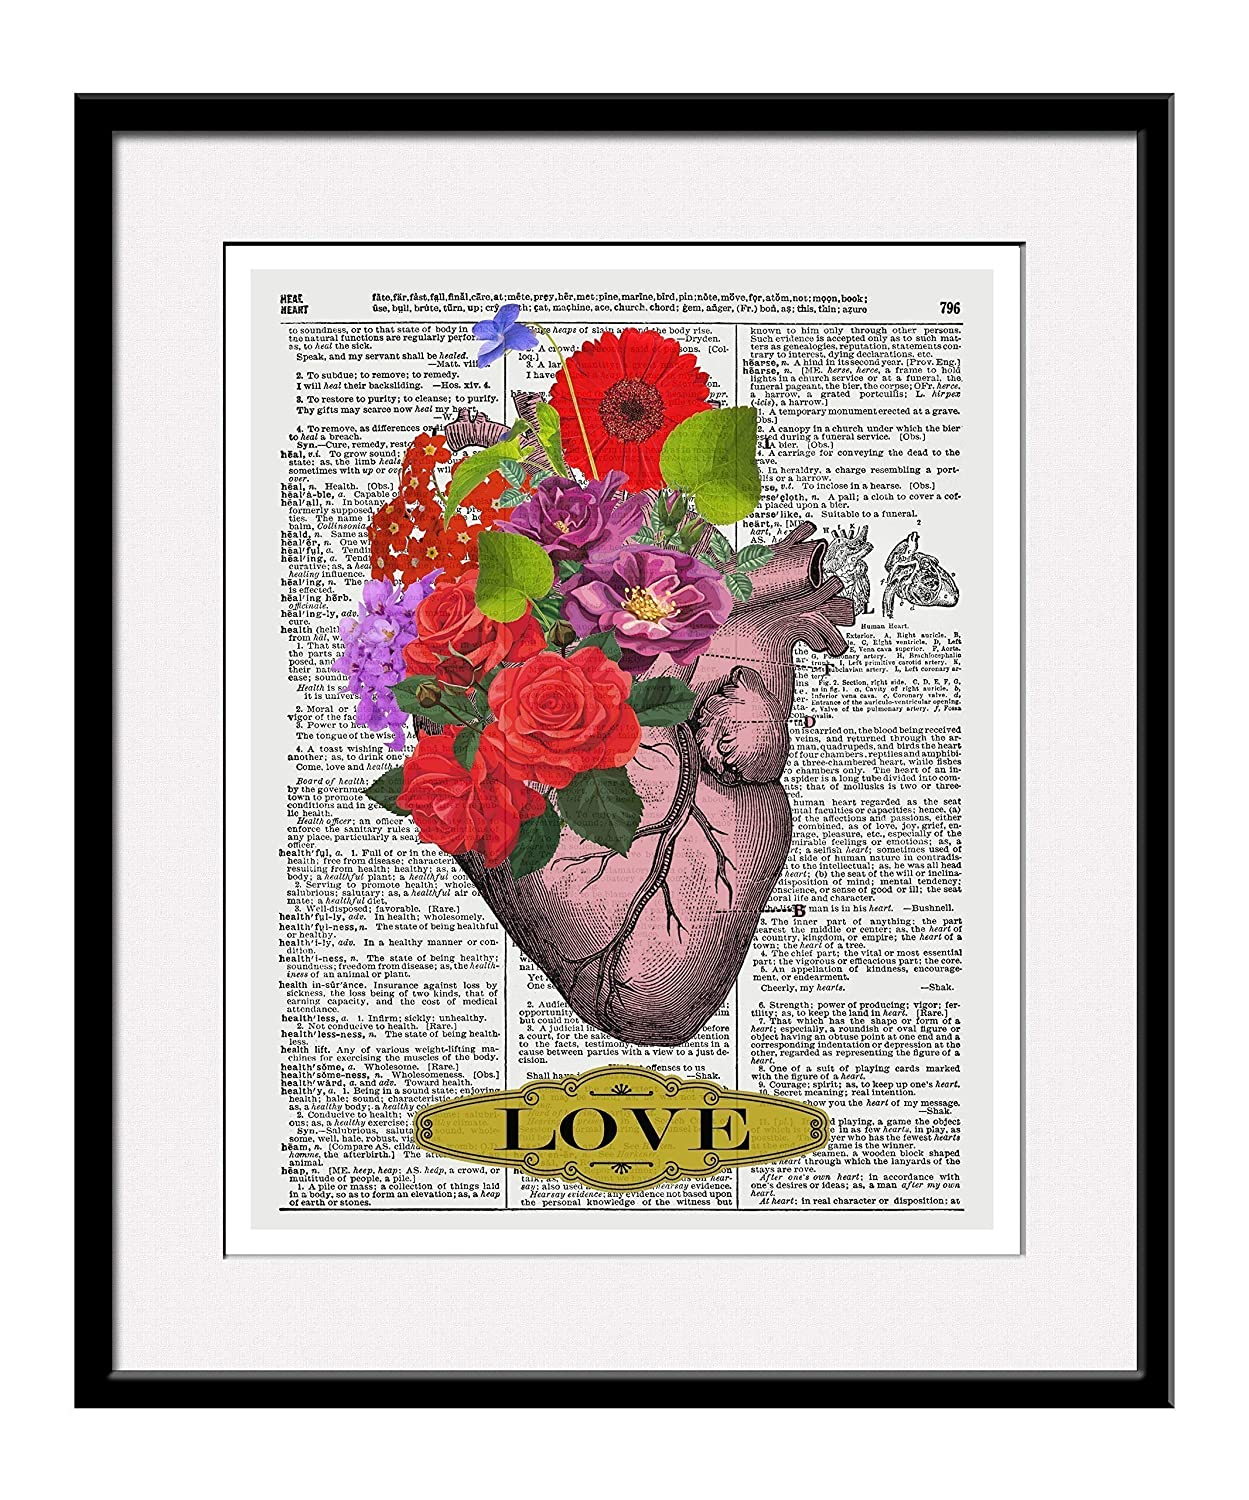 💐 Love definition of love